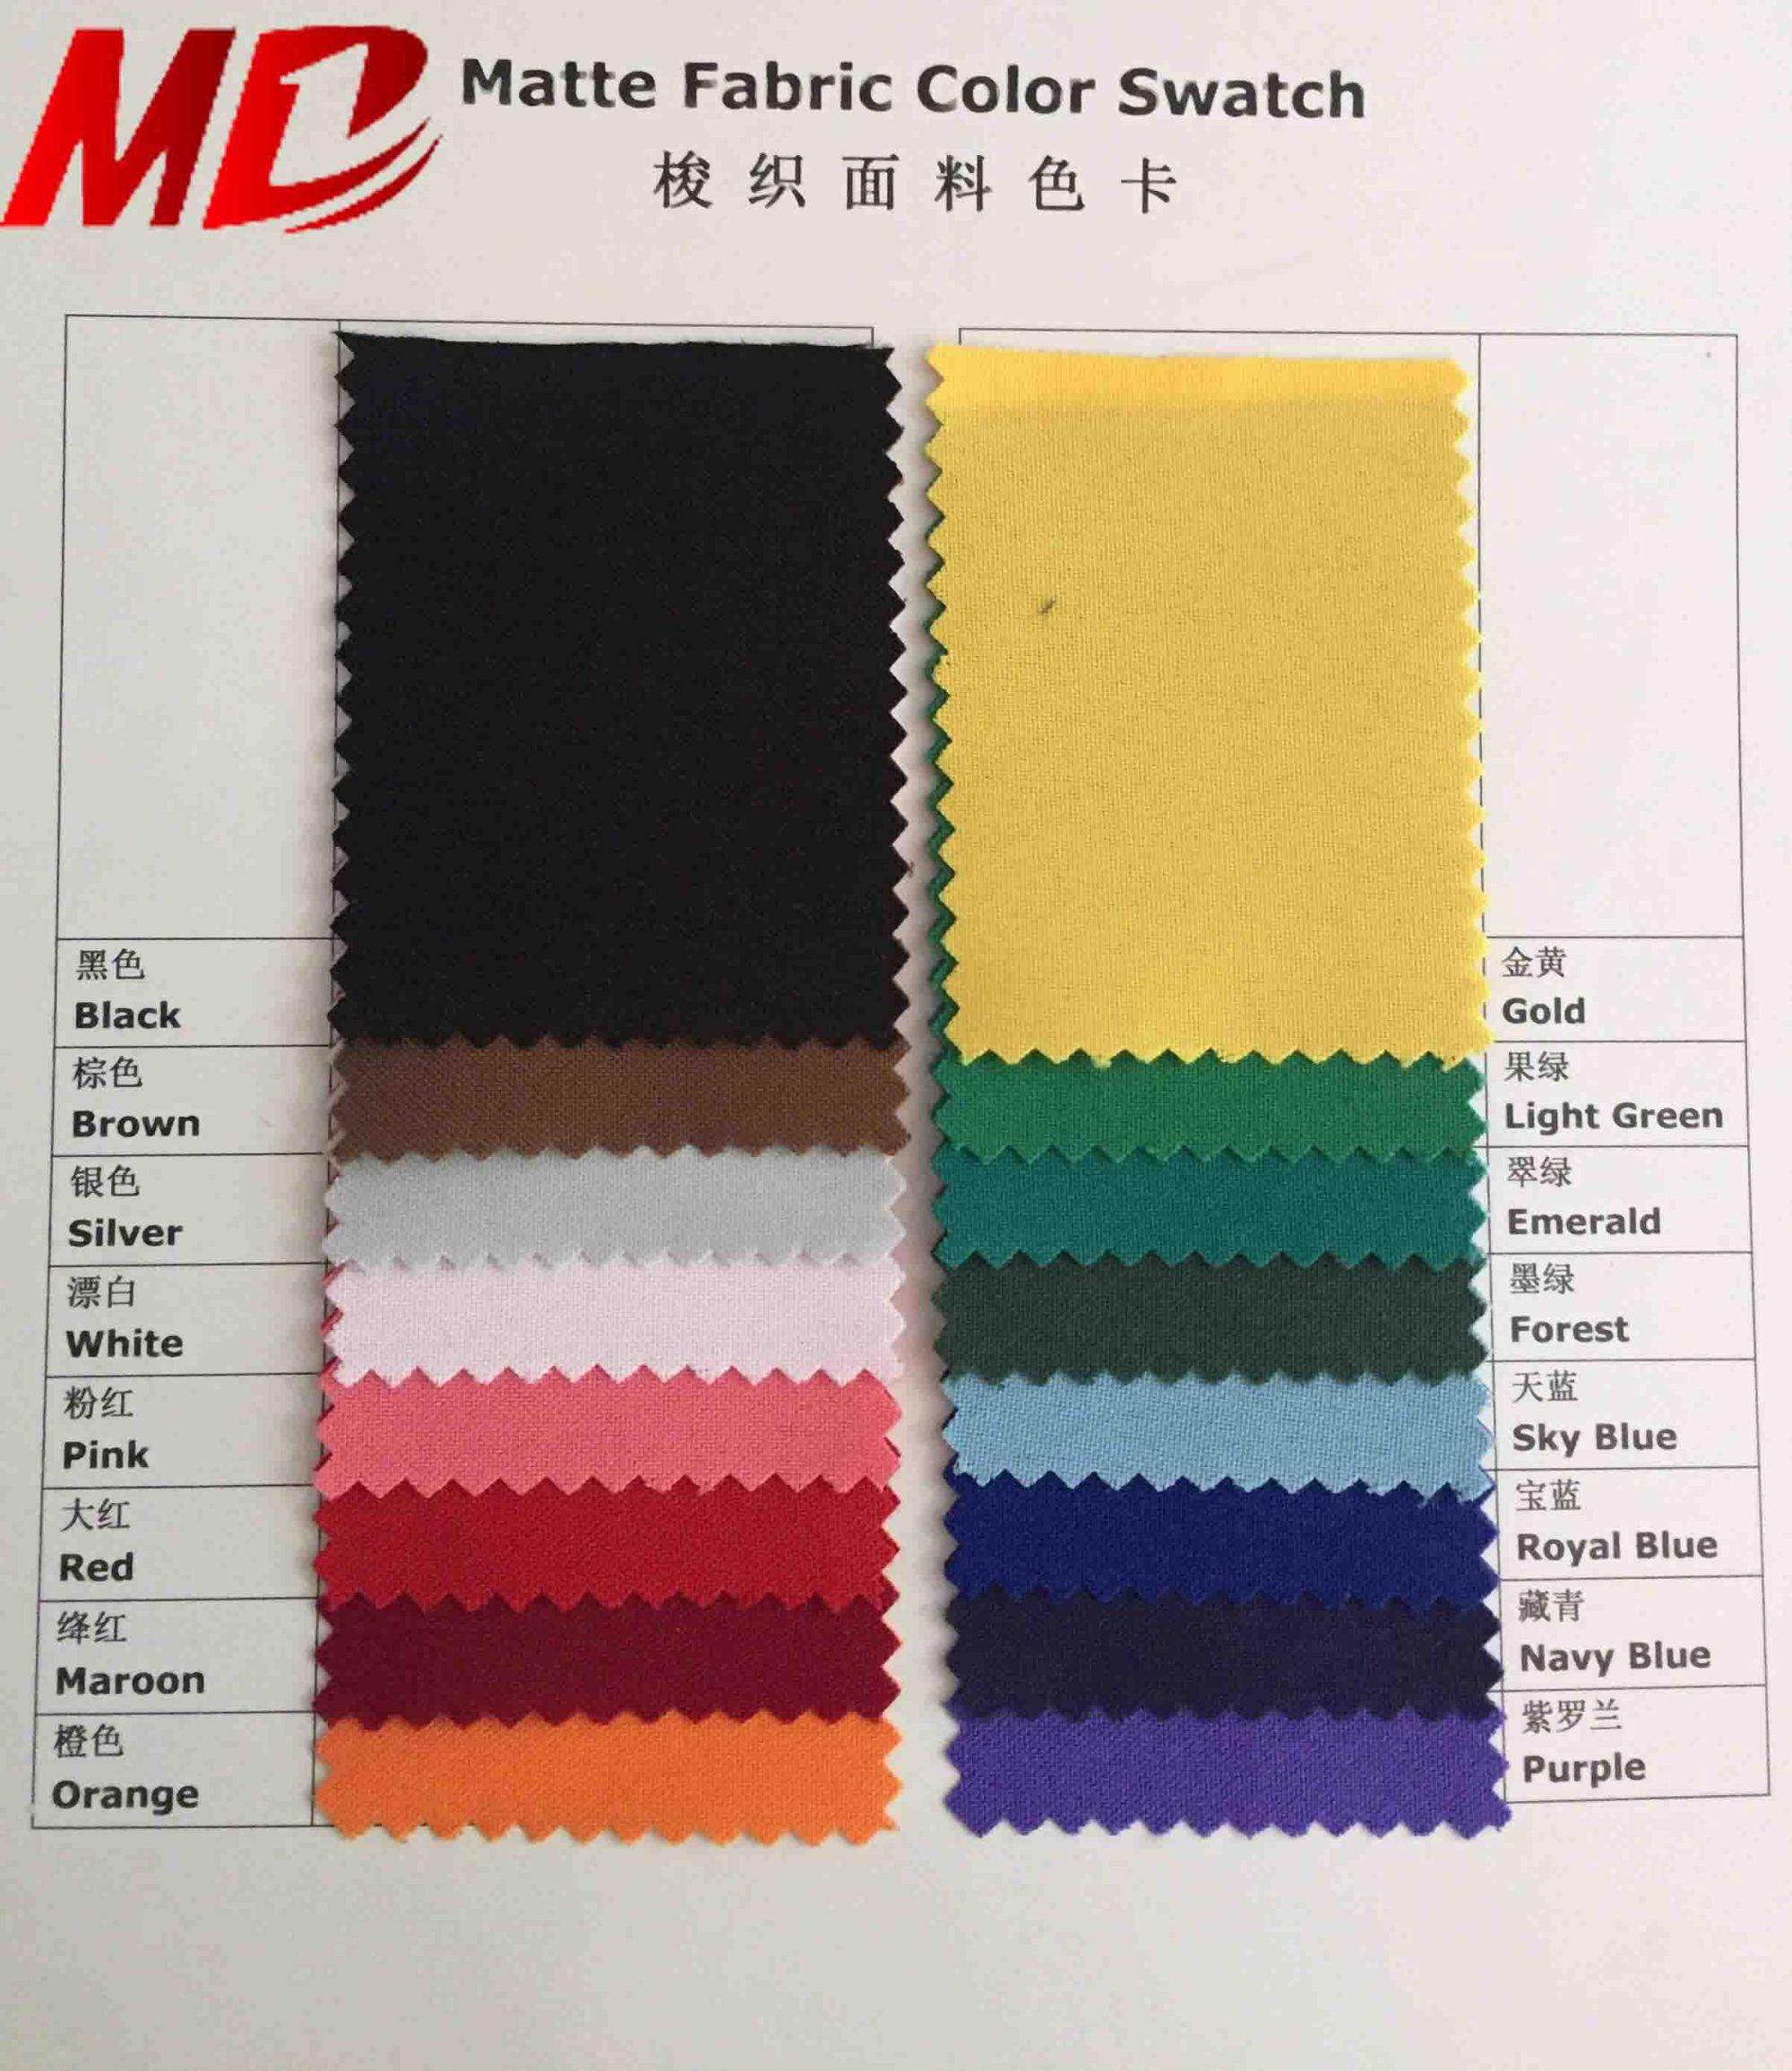 MATTE FABRIC COLOR SWATCH